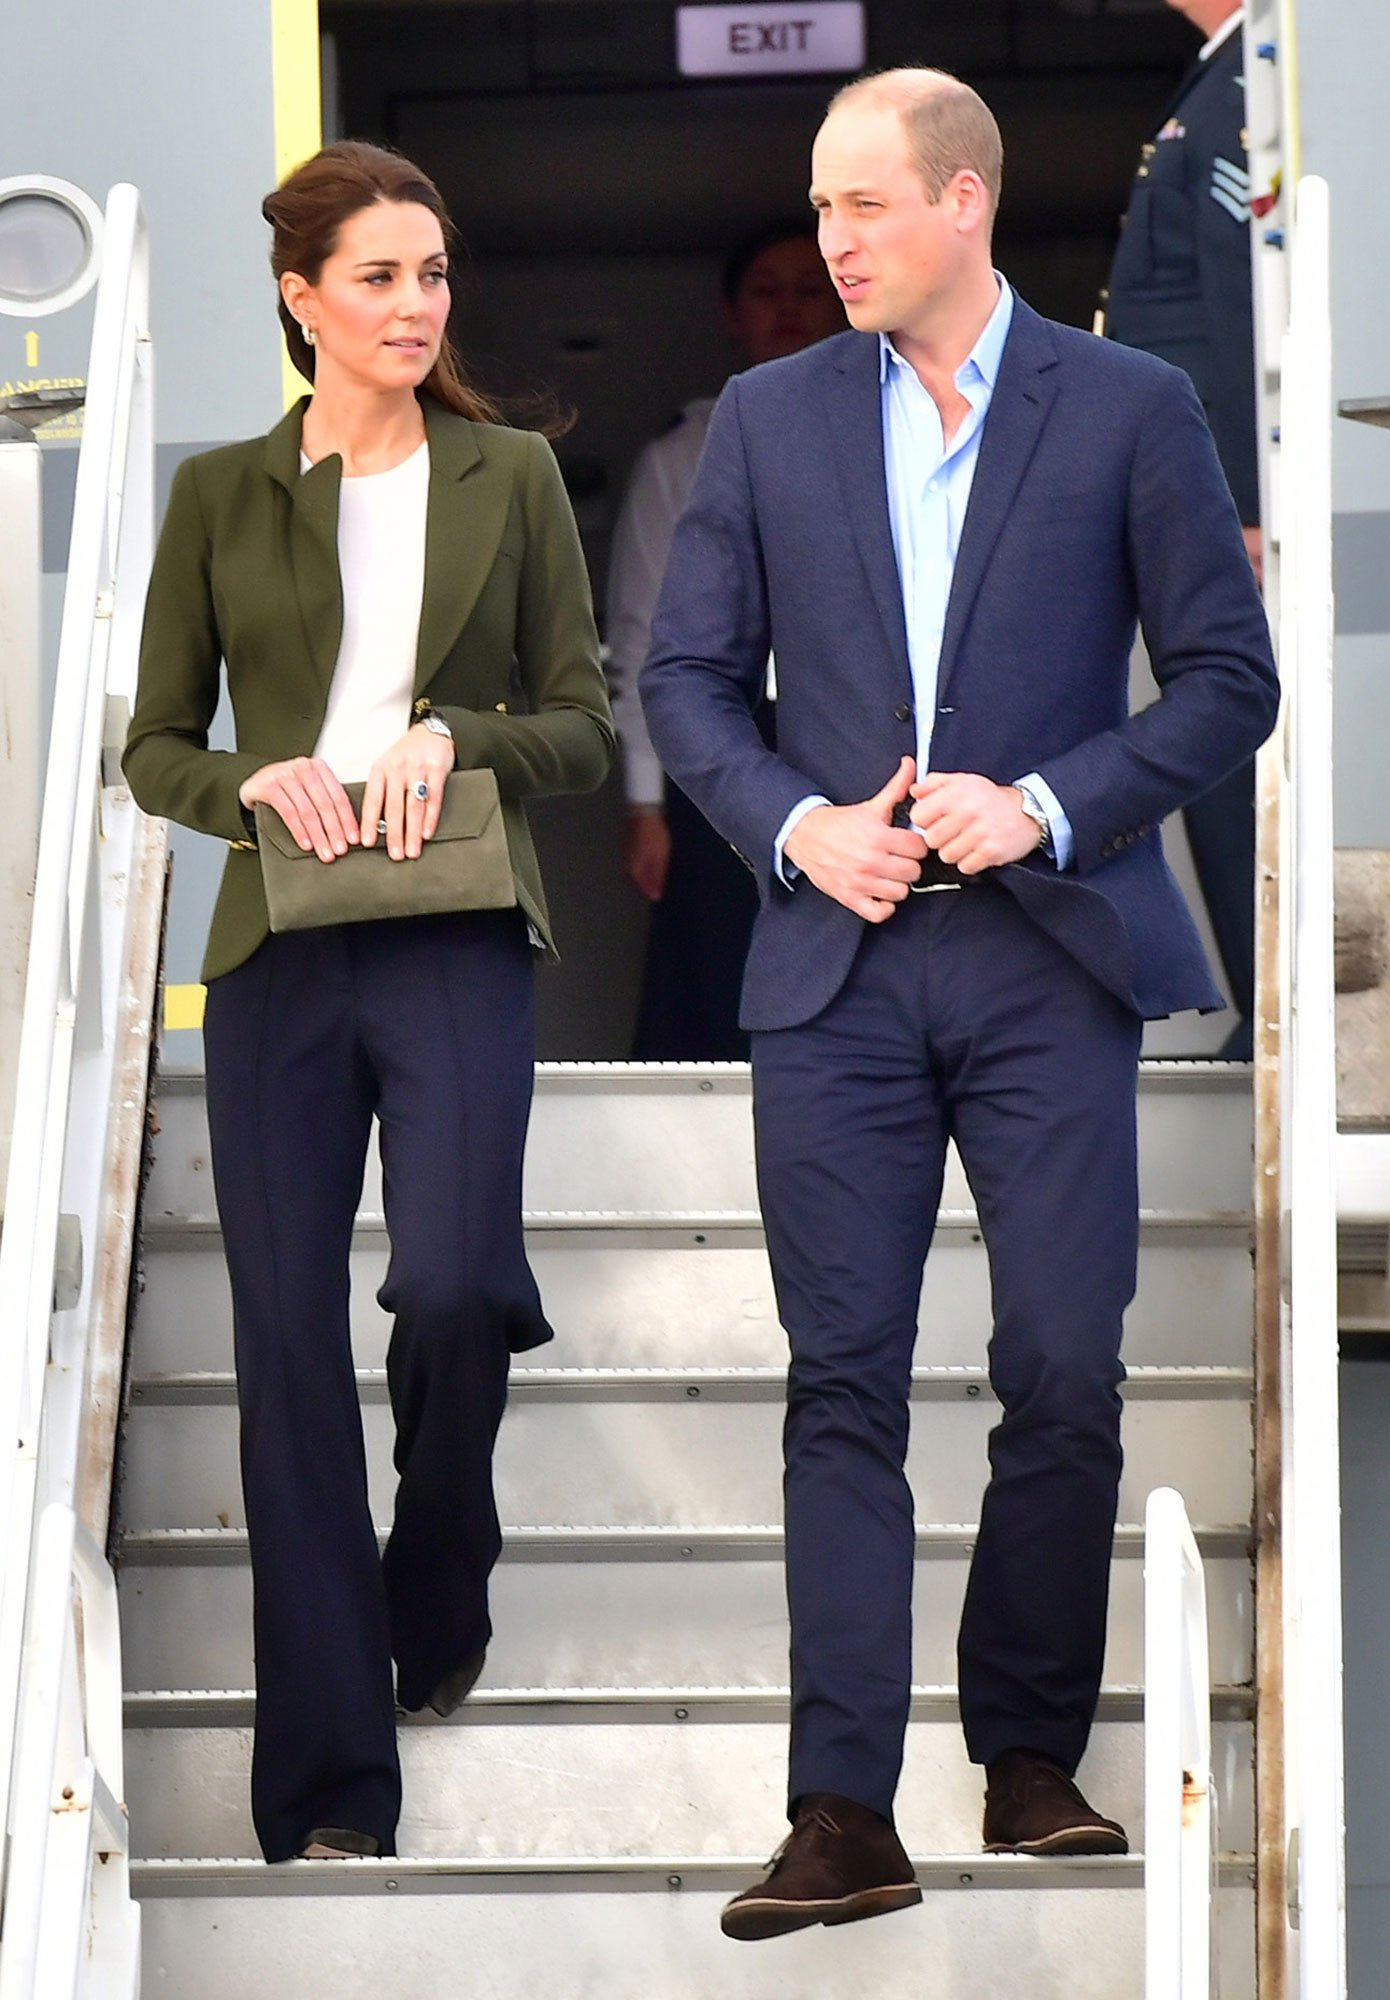 Kate Middleton Follows in Meghan Markle's Fashionable Footsteps in Wide-Legged Pants and a Blazer